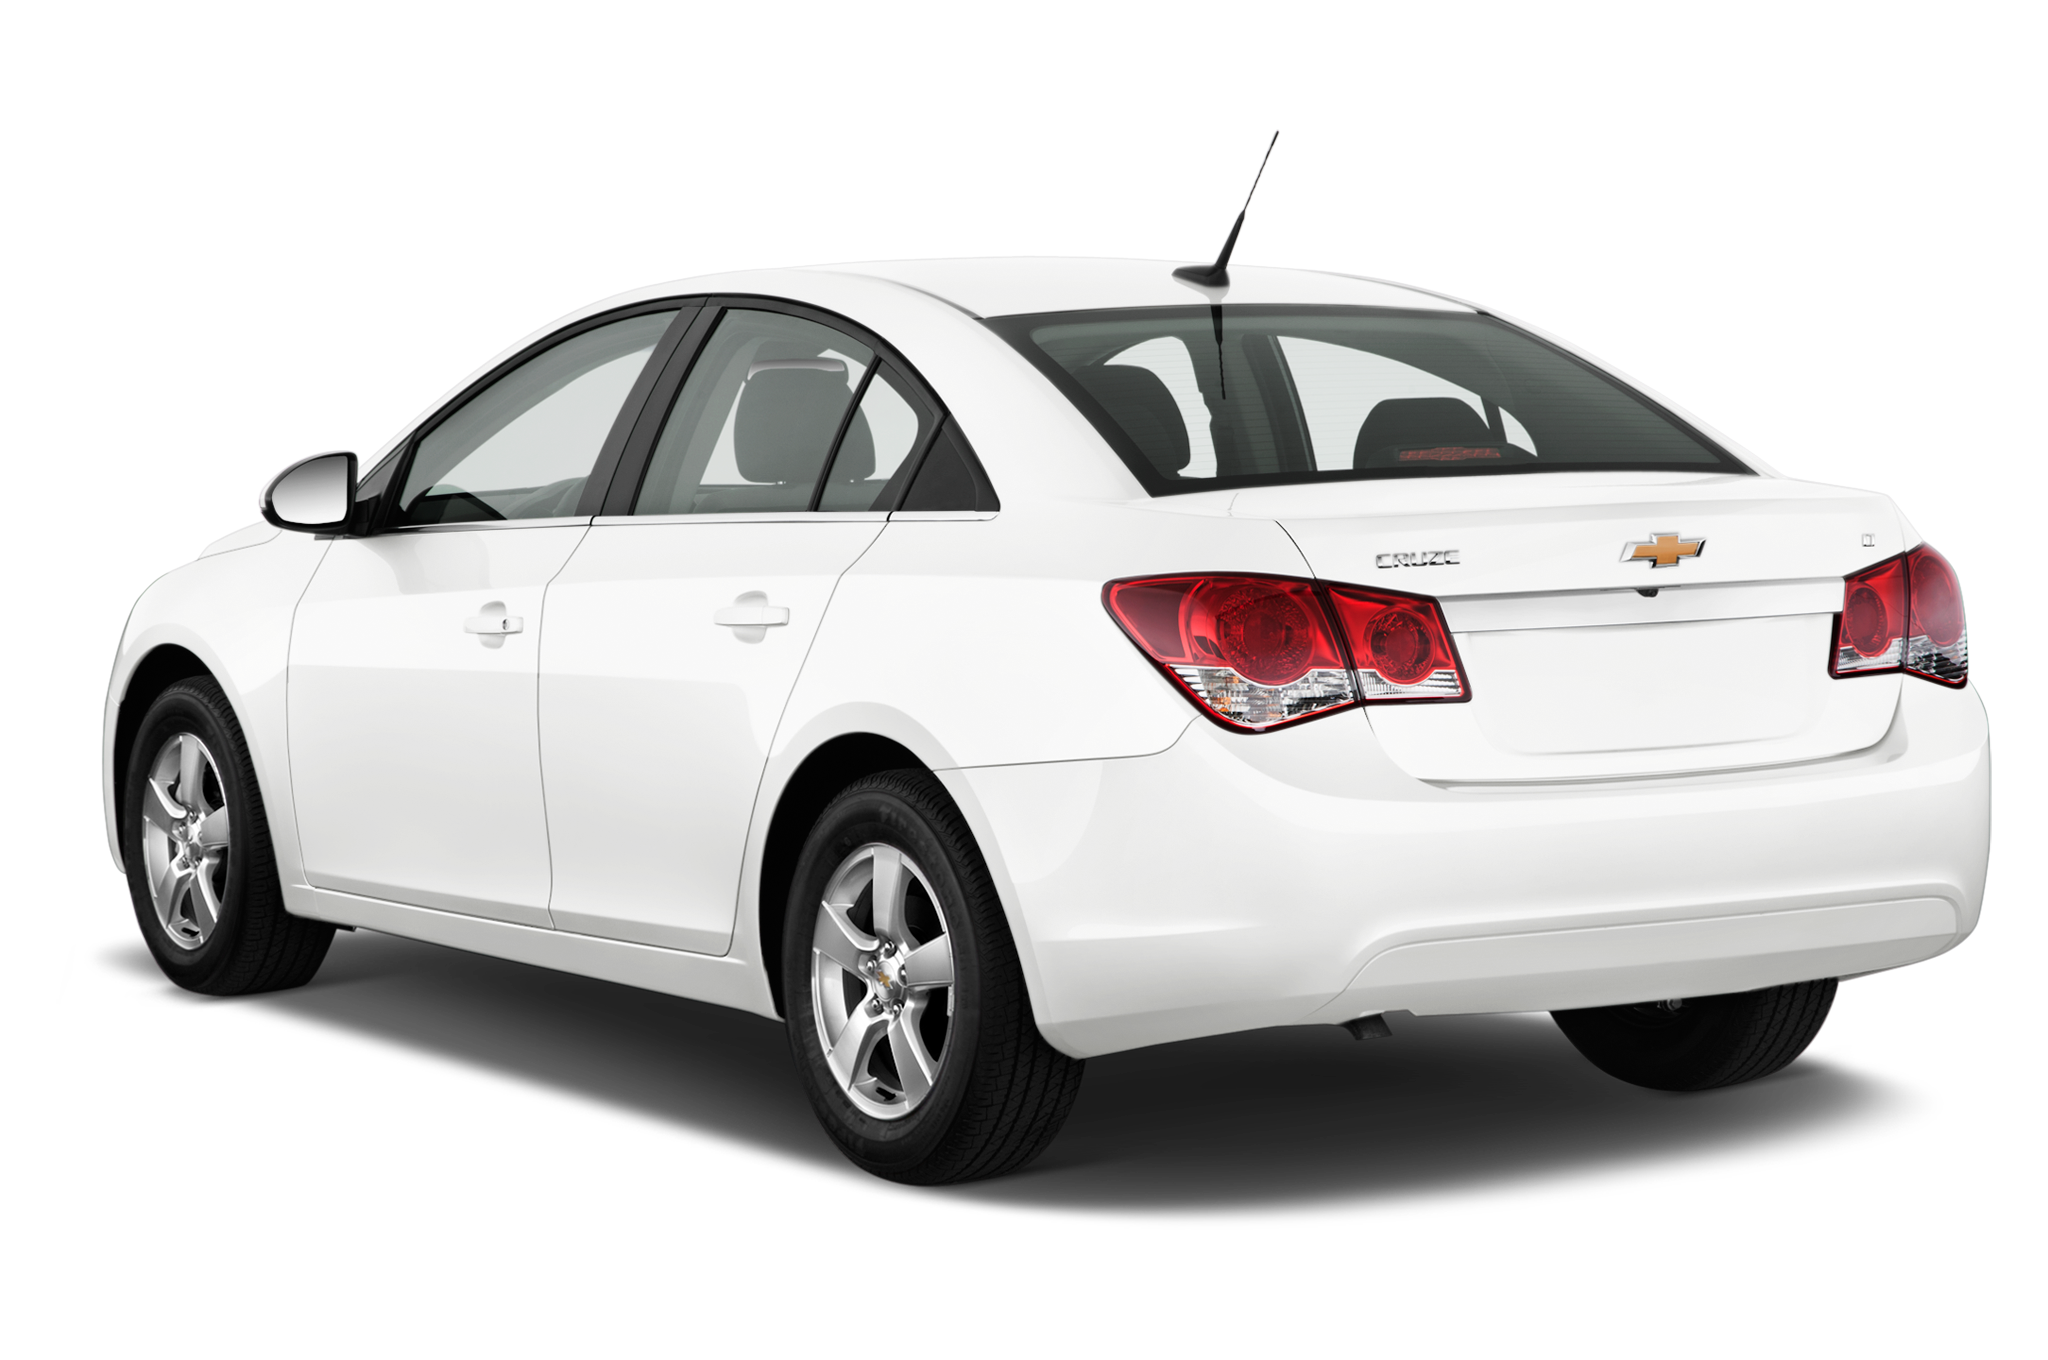 2015 chevrolet cruze facelifted at new york show automobile magazine. Black Bedroom Furniture Sets. Home Design Ideas